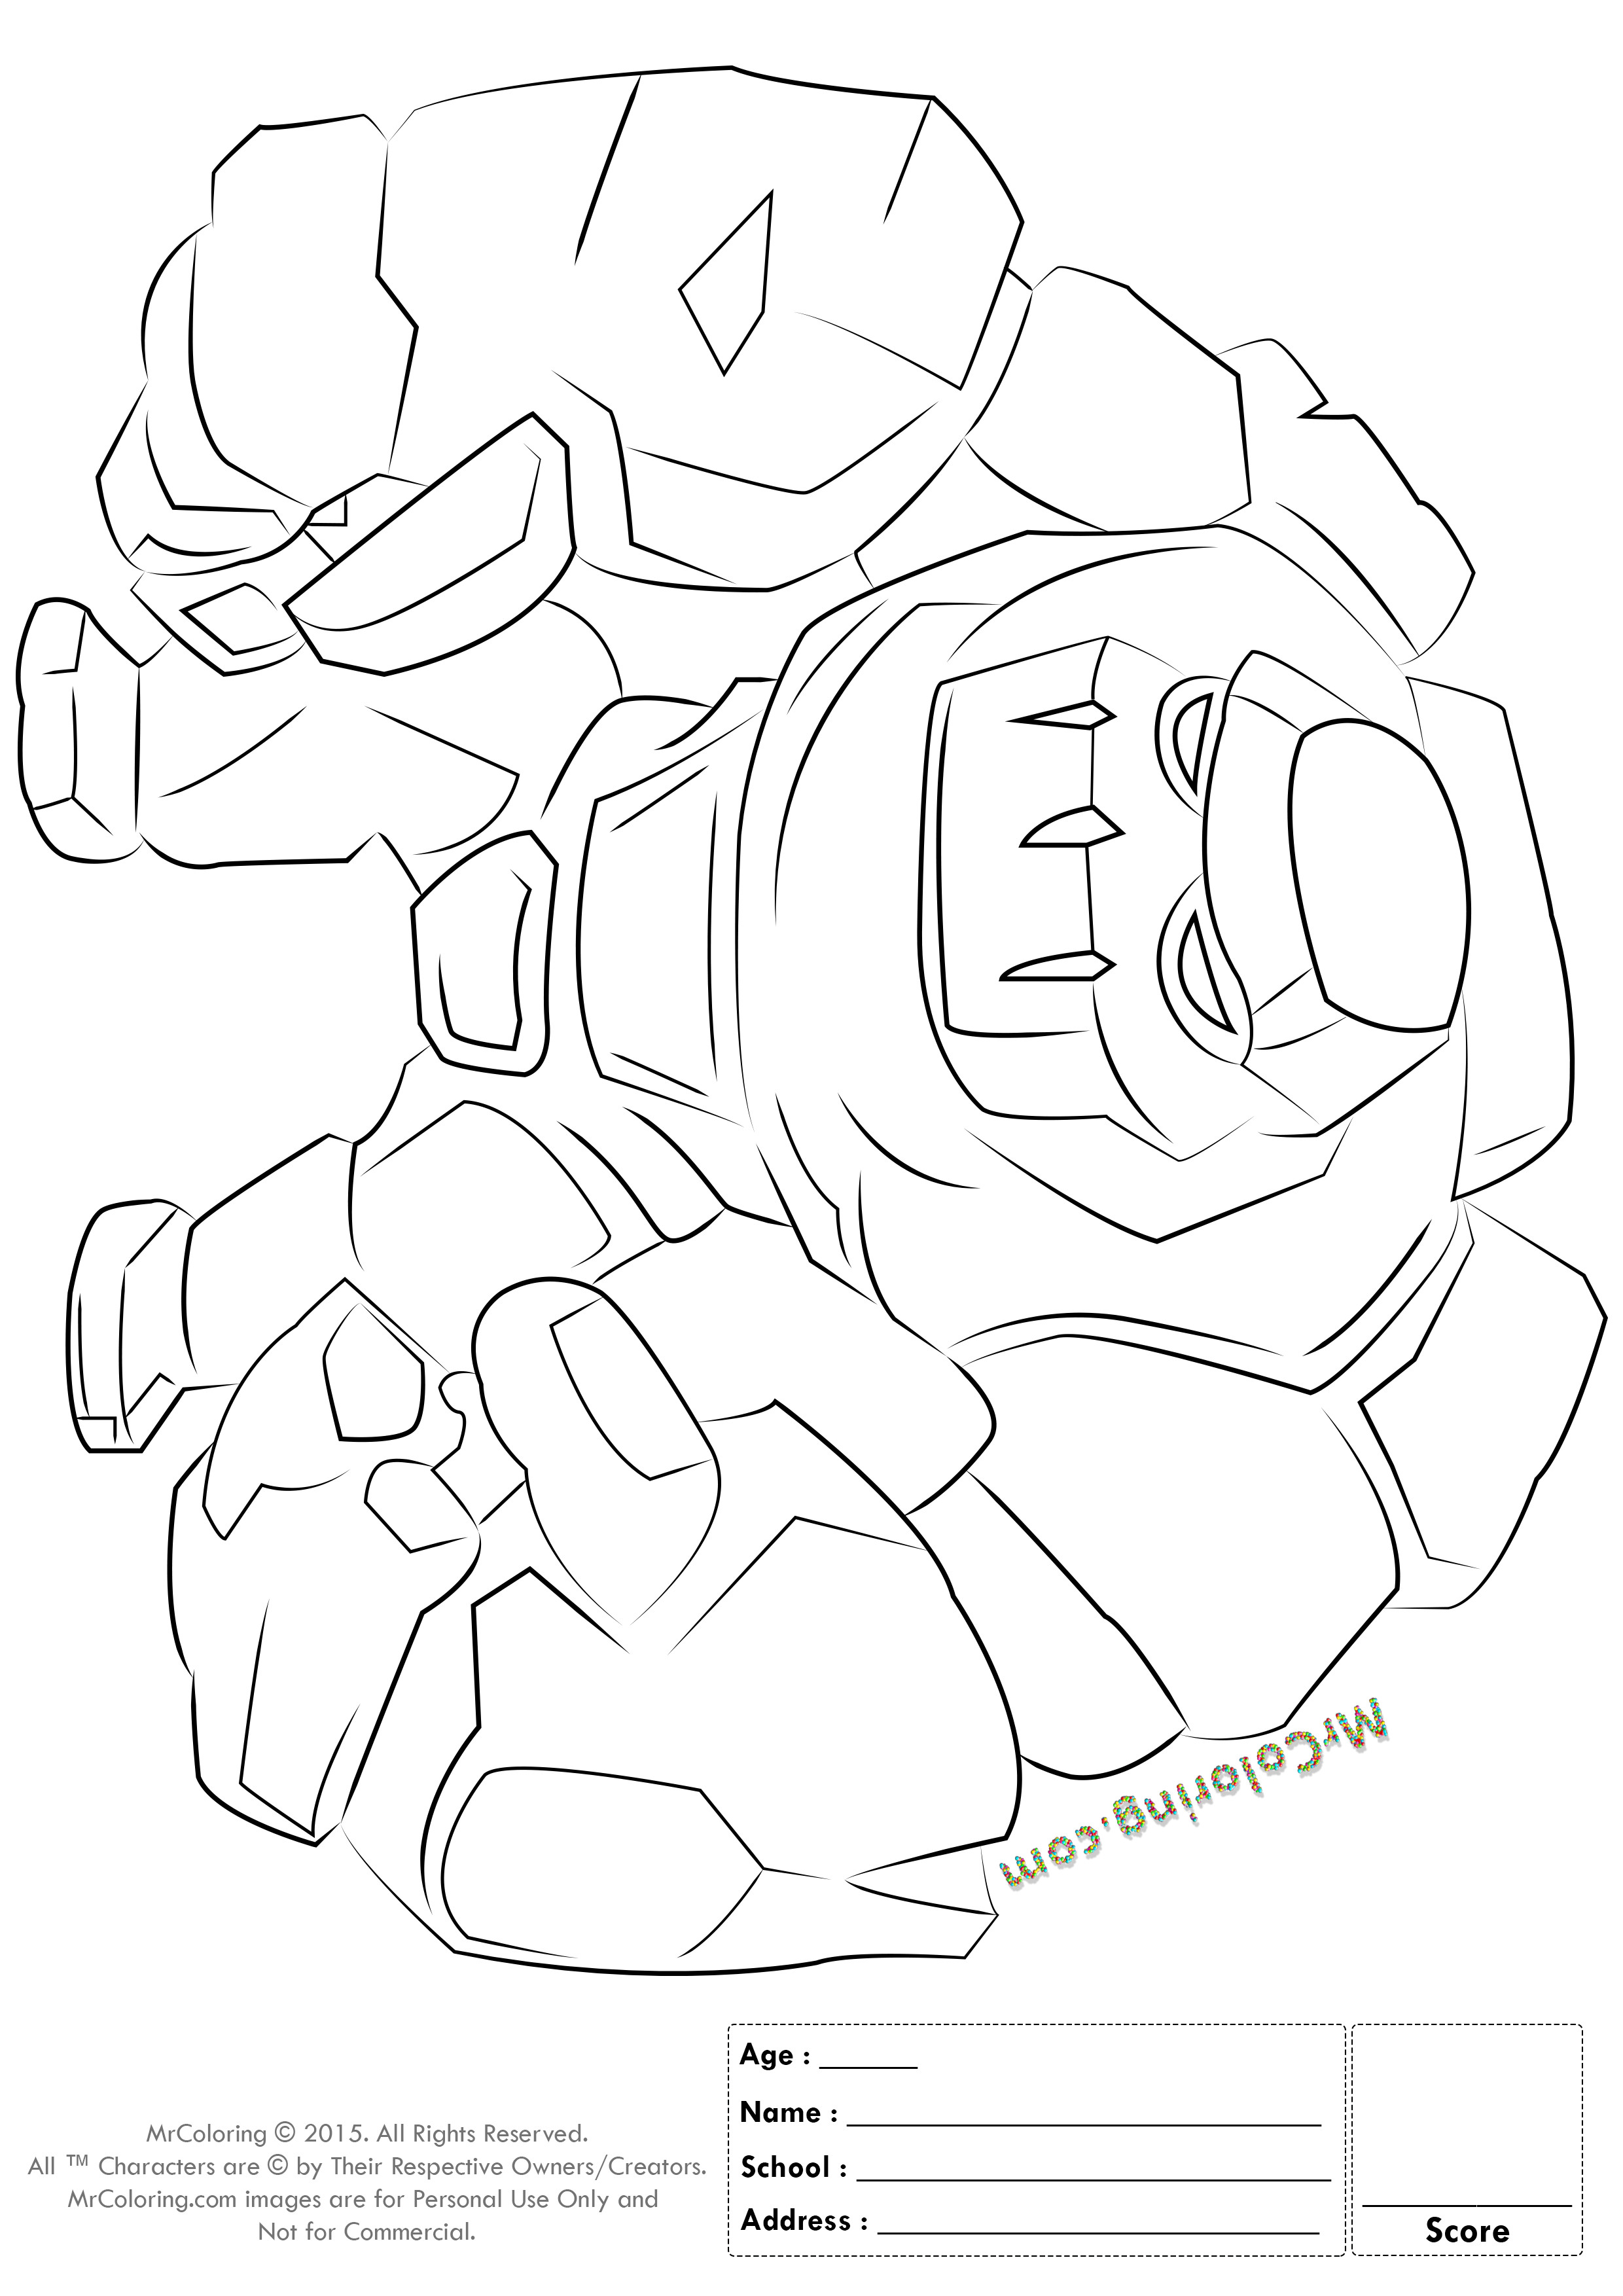 Royal Coloring Pages  Free Printable Clash of Clans Golem Coloring Pages 1